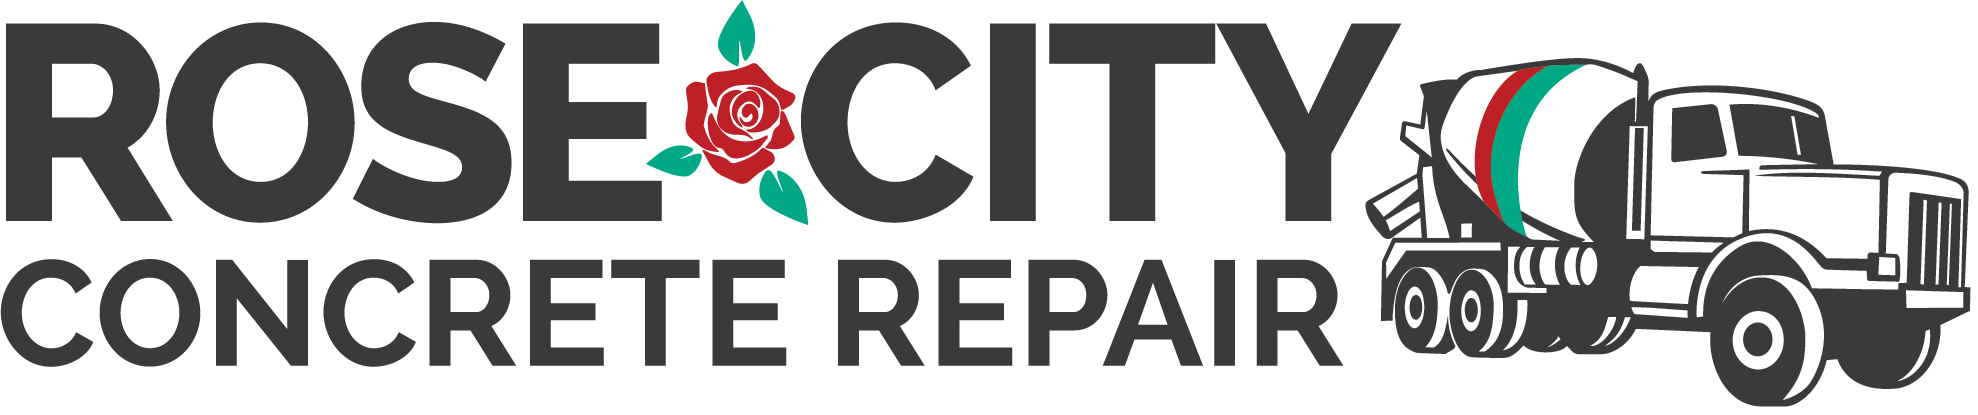 Rose City Concrete Repair Logo